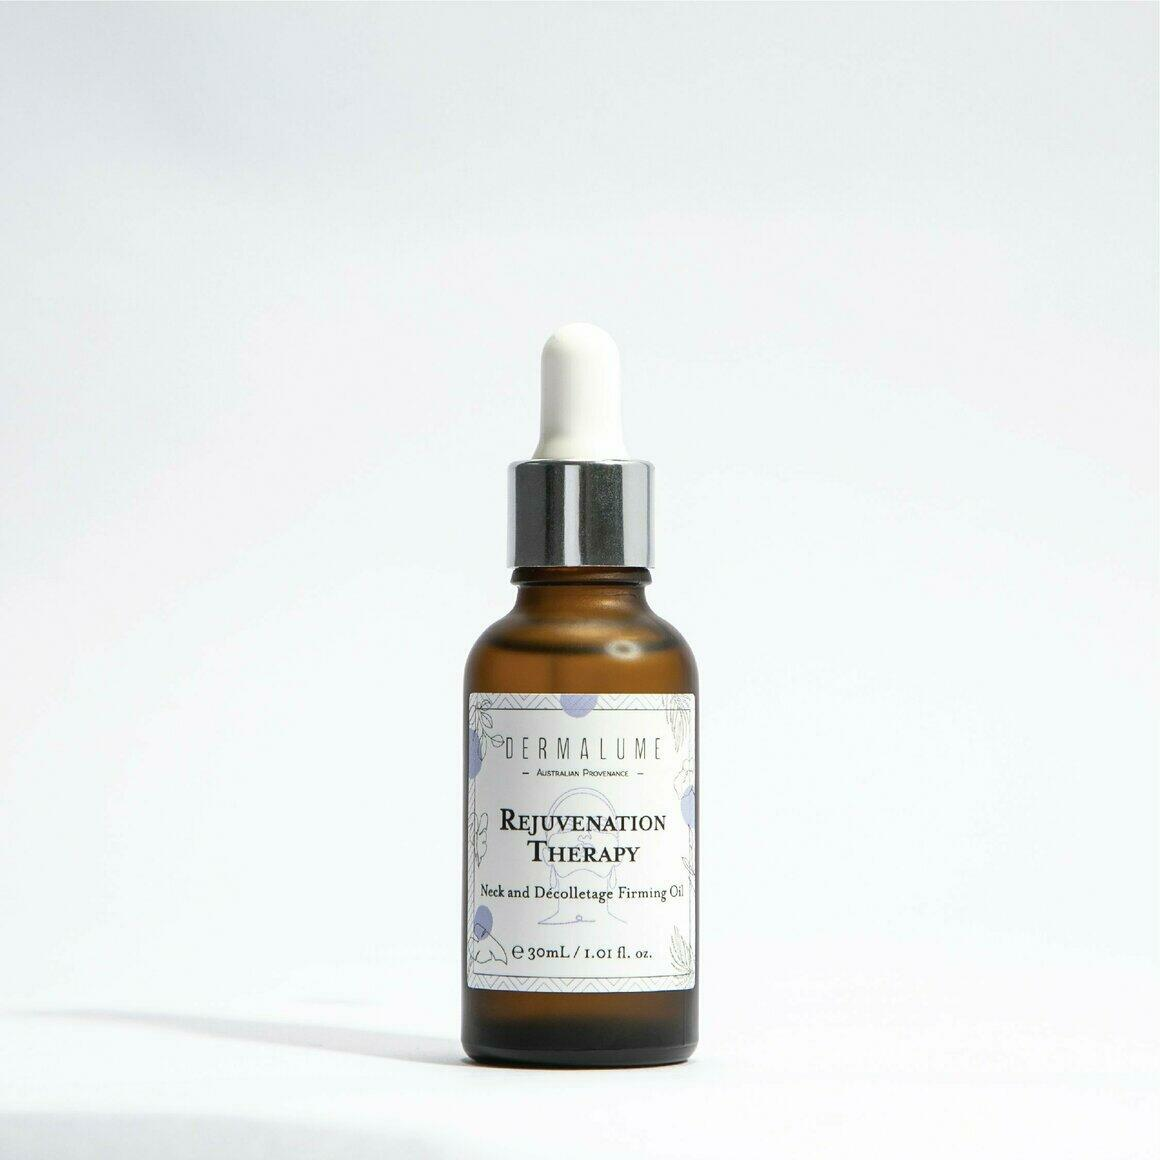 Dermalume Rejuvenation Therapy Neck And Decolletage Firming Oil 30ml | Trada Marketplace